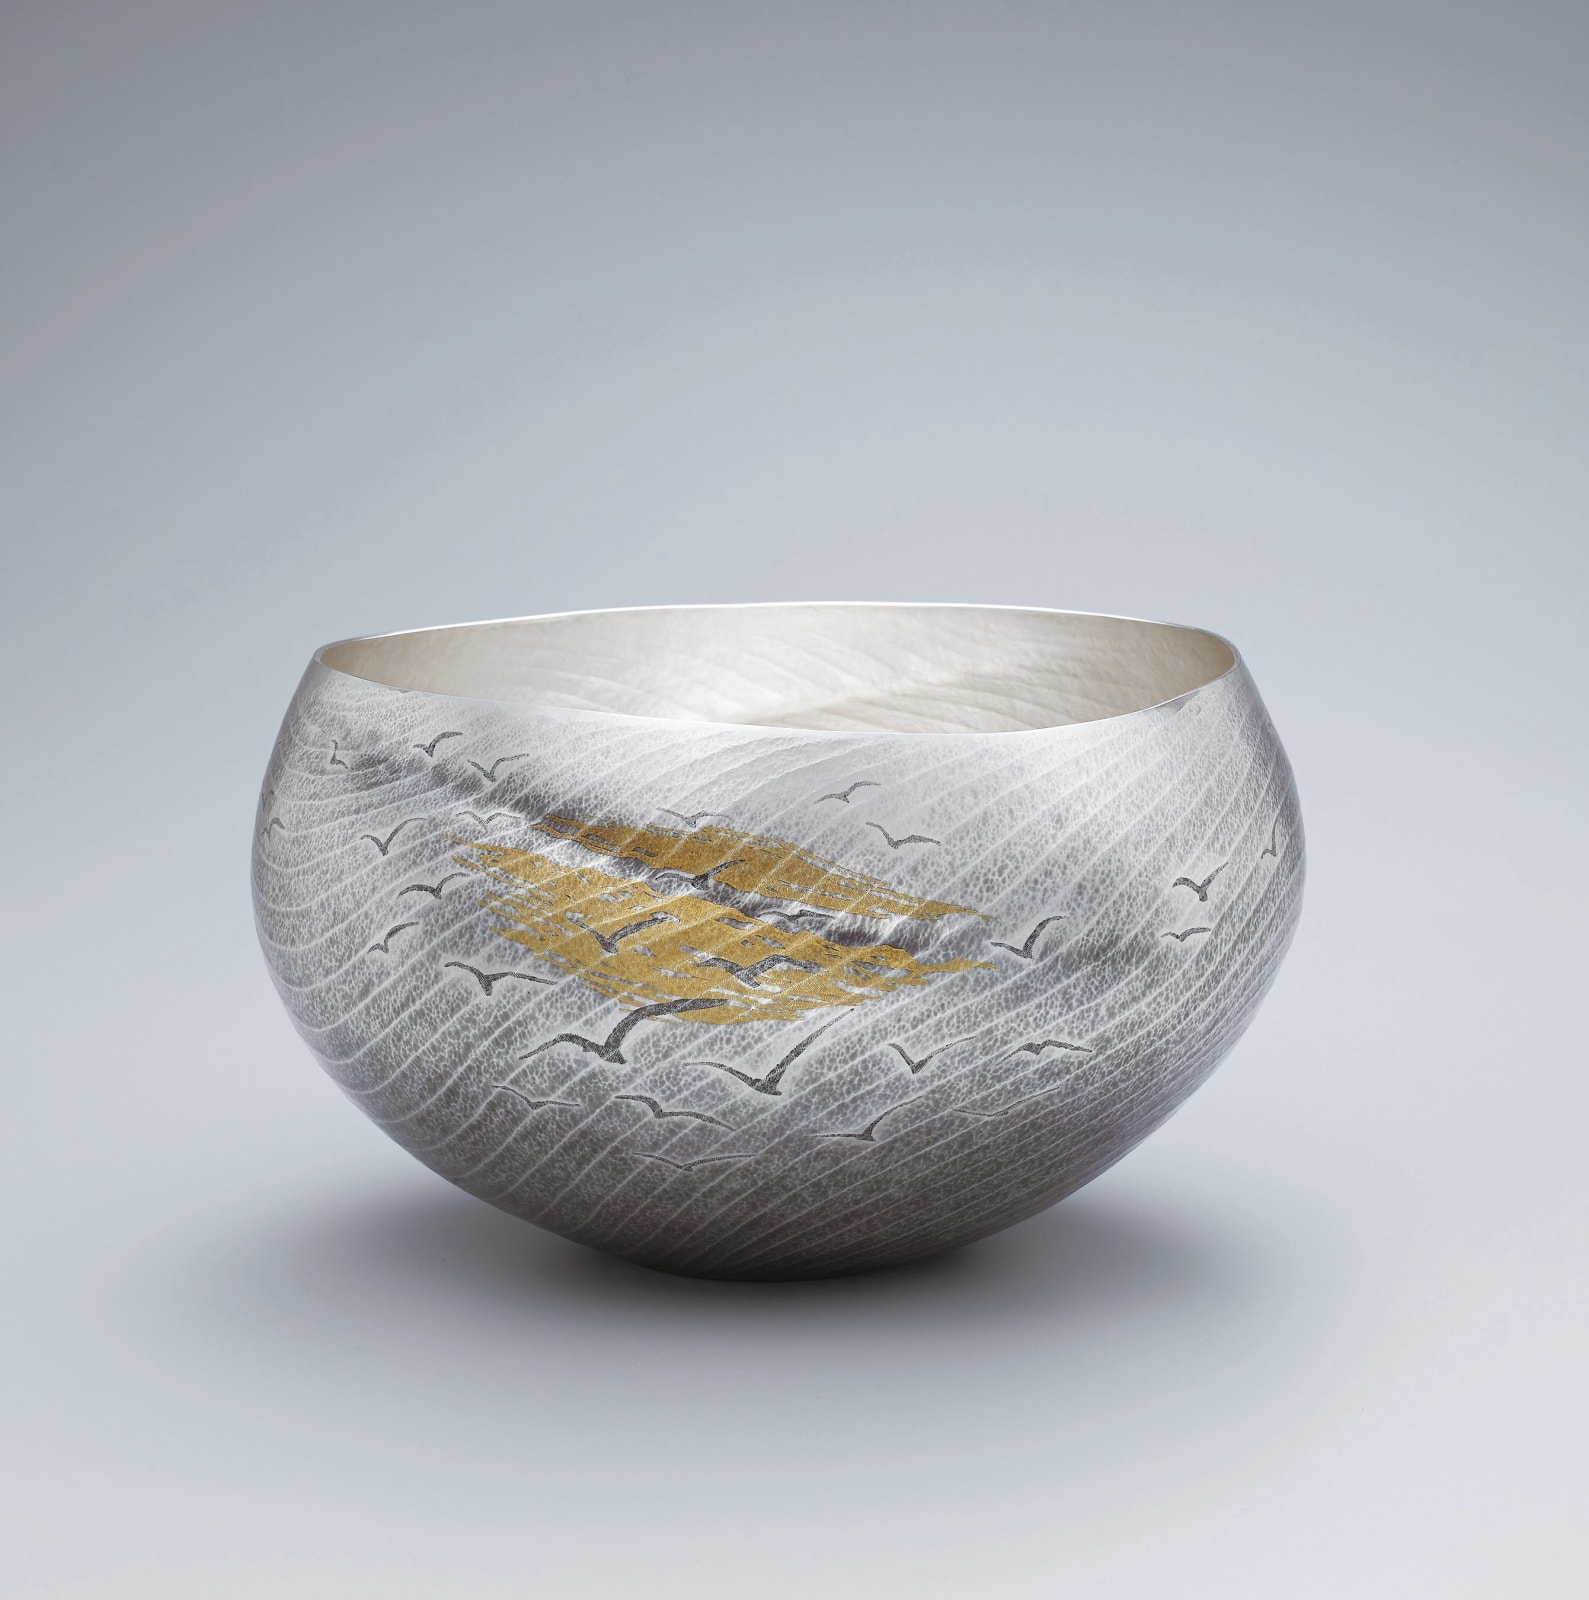 "Osumi Yukie (b. 1945), Living National Treasure Silver Vase ""Kaikei"" (Seascape), 2019 Hammered silver with nunomezogan (textile imprint inlay) decoration in lead and gold h. 7 7/8 x w. 13 5/8 x d. 12 5/8 in. (20 x 34.5 x 32 cm)"